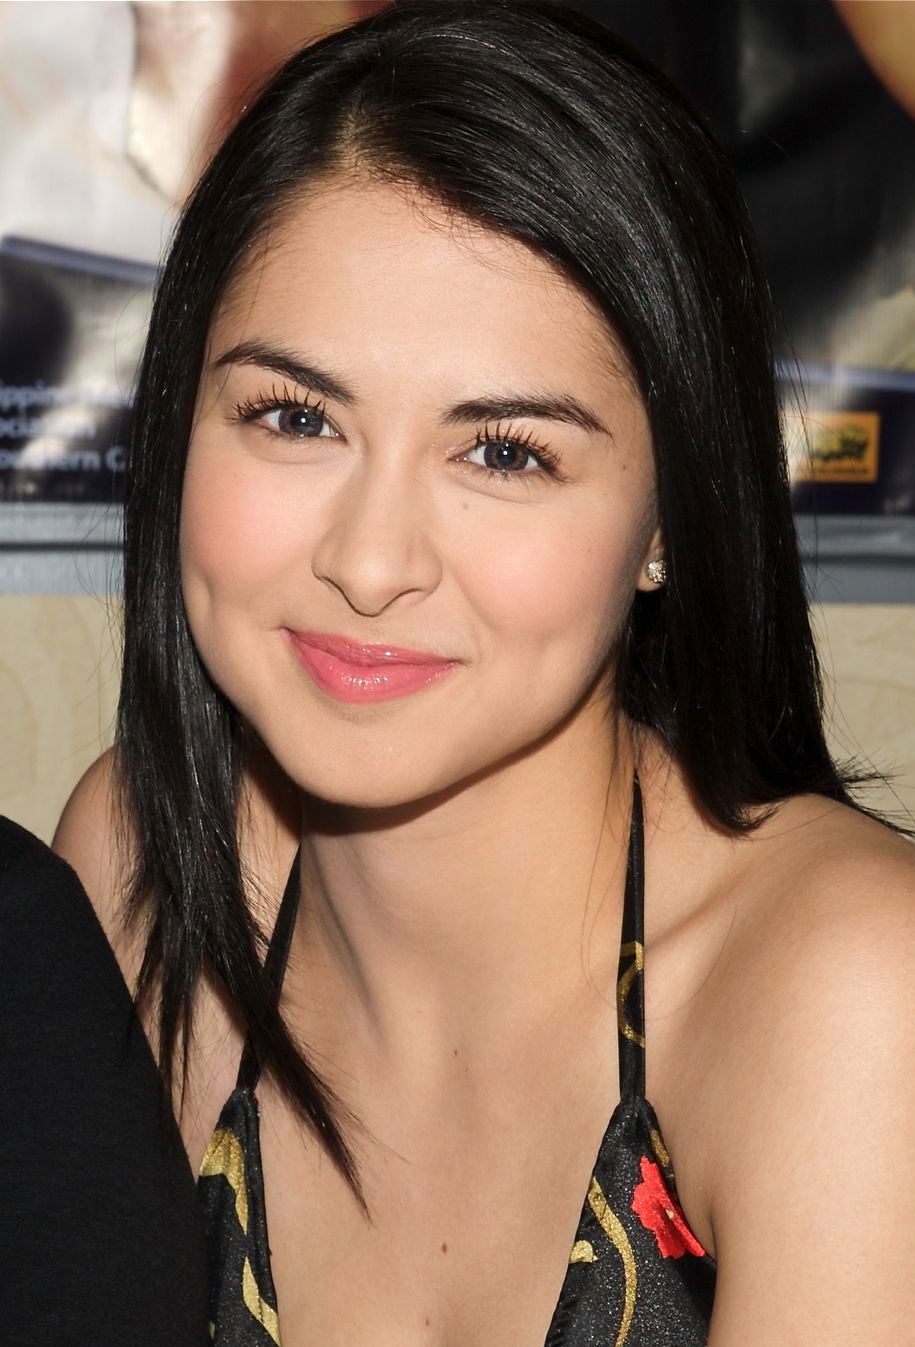 http://upload.wikimedia.org/wikipedia/commons/9/9b/Marian_Rivera_and_Dingdong_Dantes_LA_Press_Conference,_December_2008.jpg